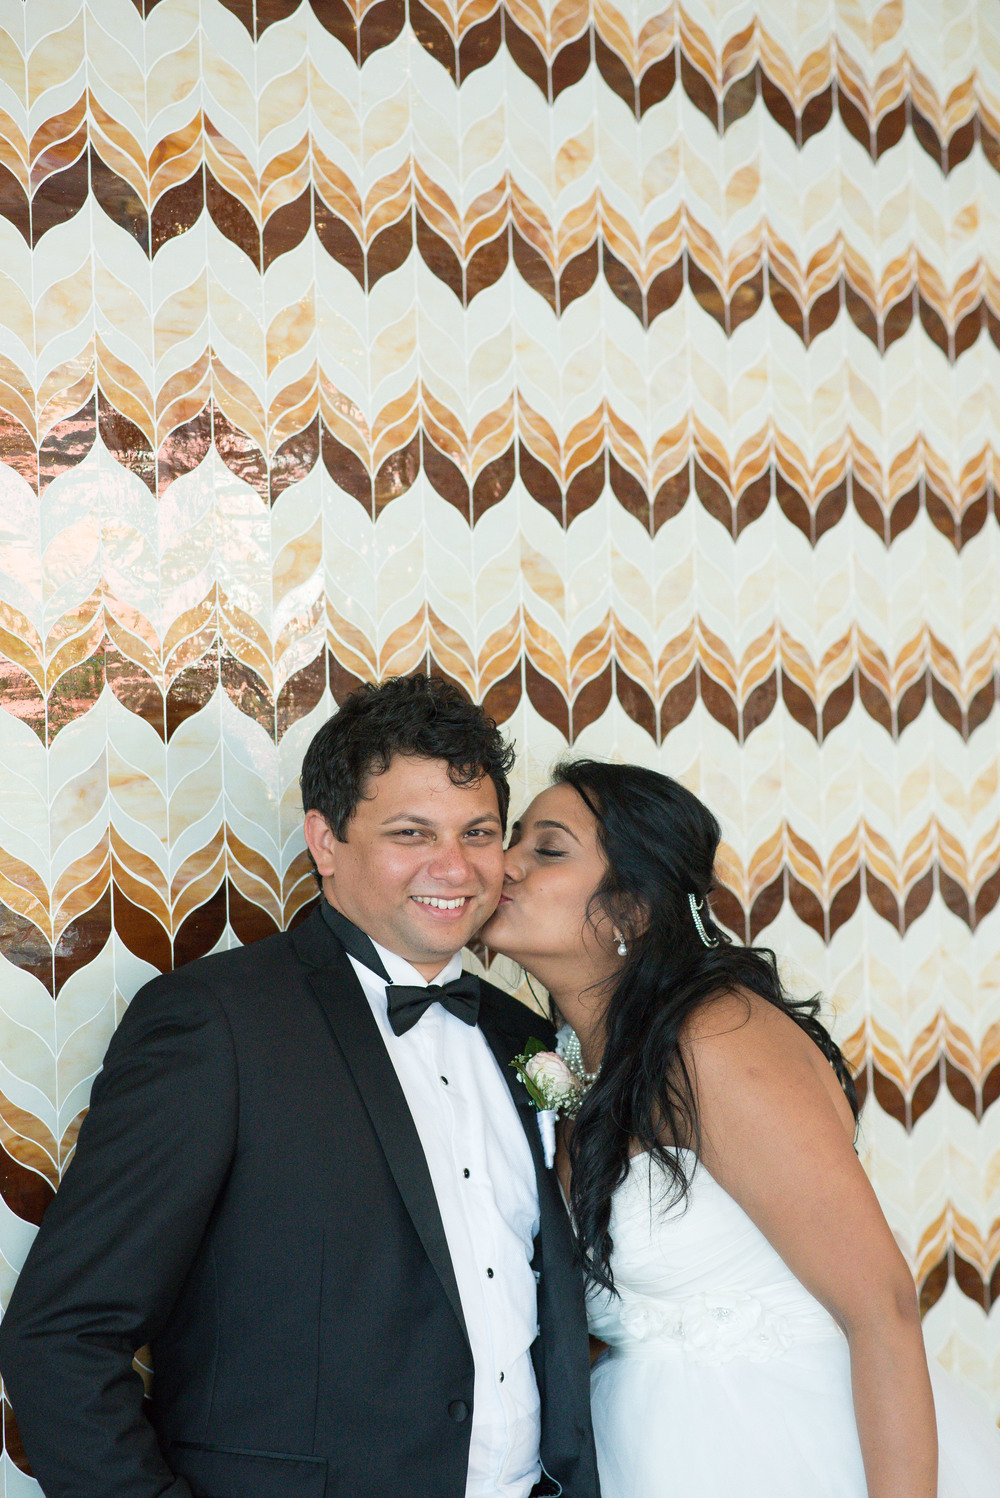 Disney_Wedding_Rydges_Southbank_Brisbane_St_Brigids_Red_Hill_Siebel_December-109.jpg